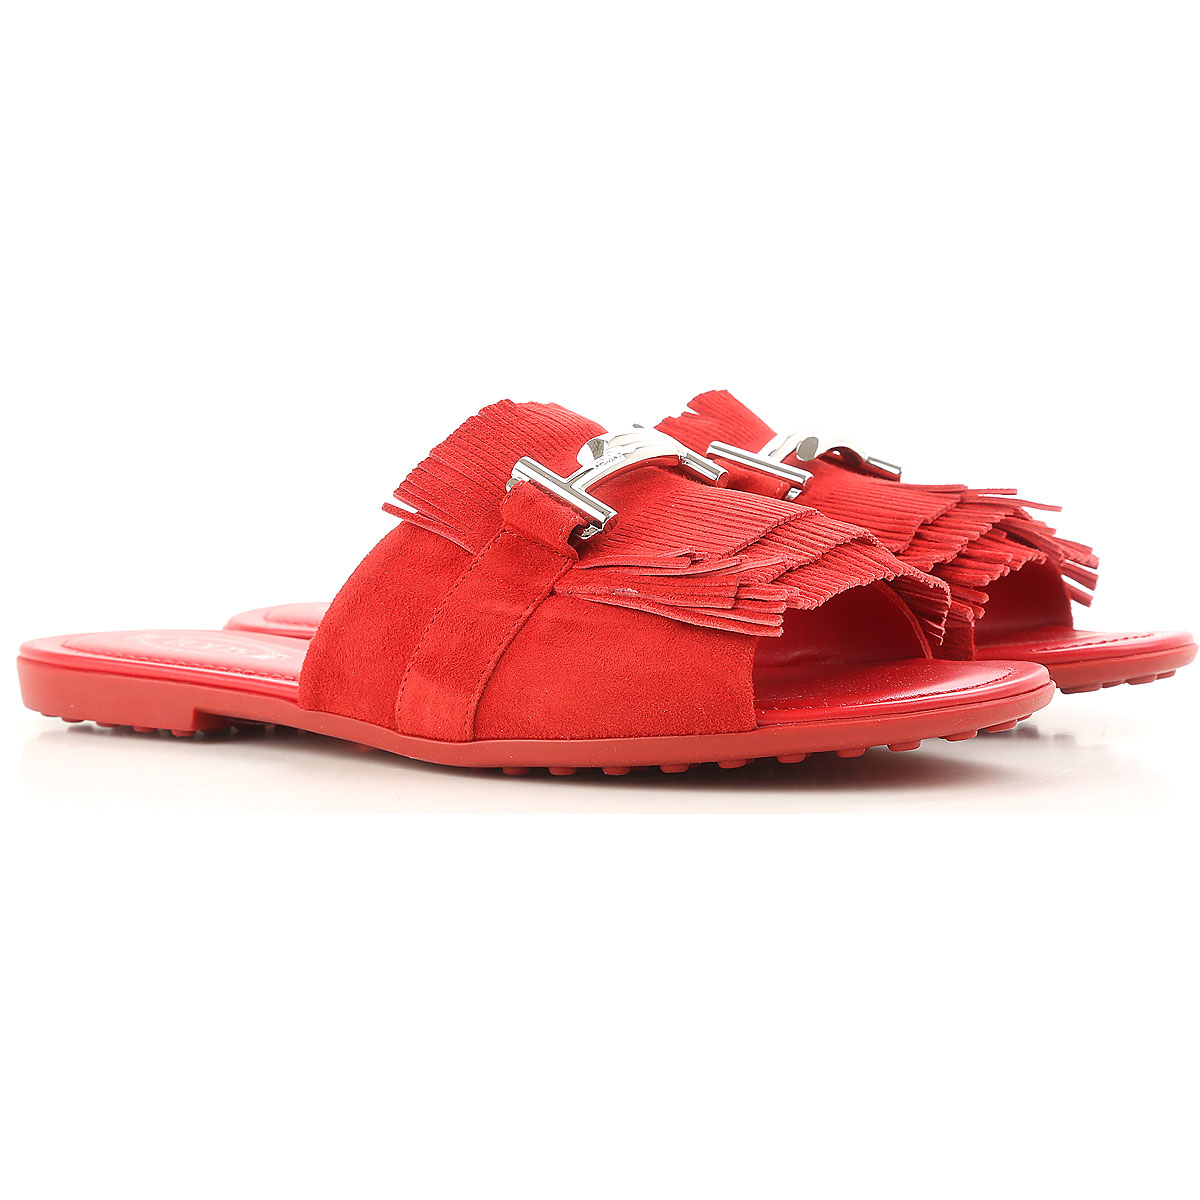 Tods Sandals for Women On Sale in Outlet ribes UK - GOOFASH